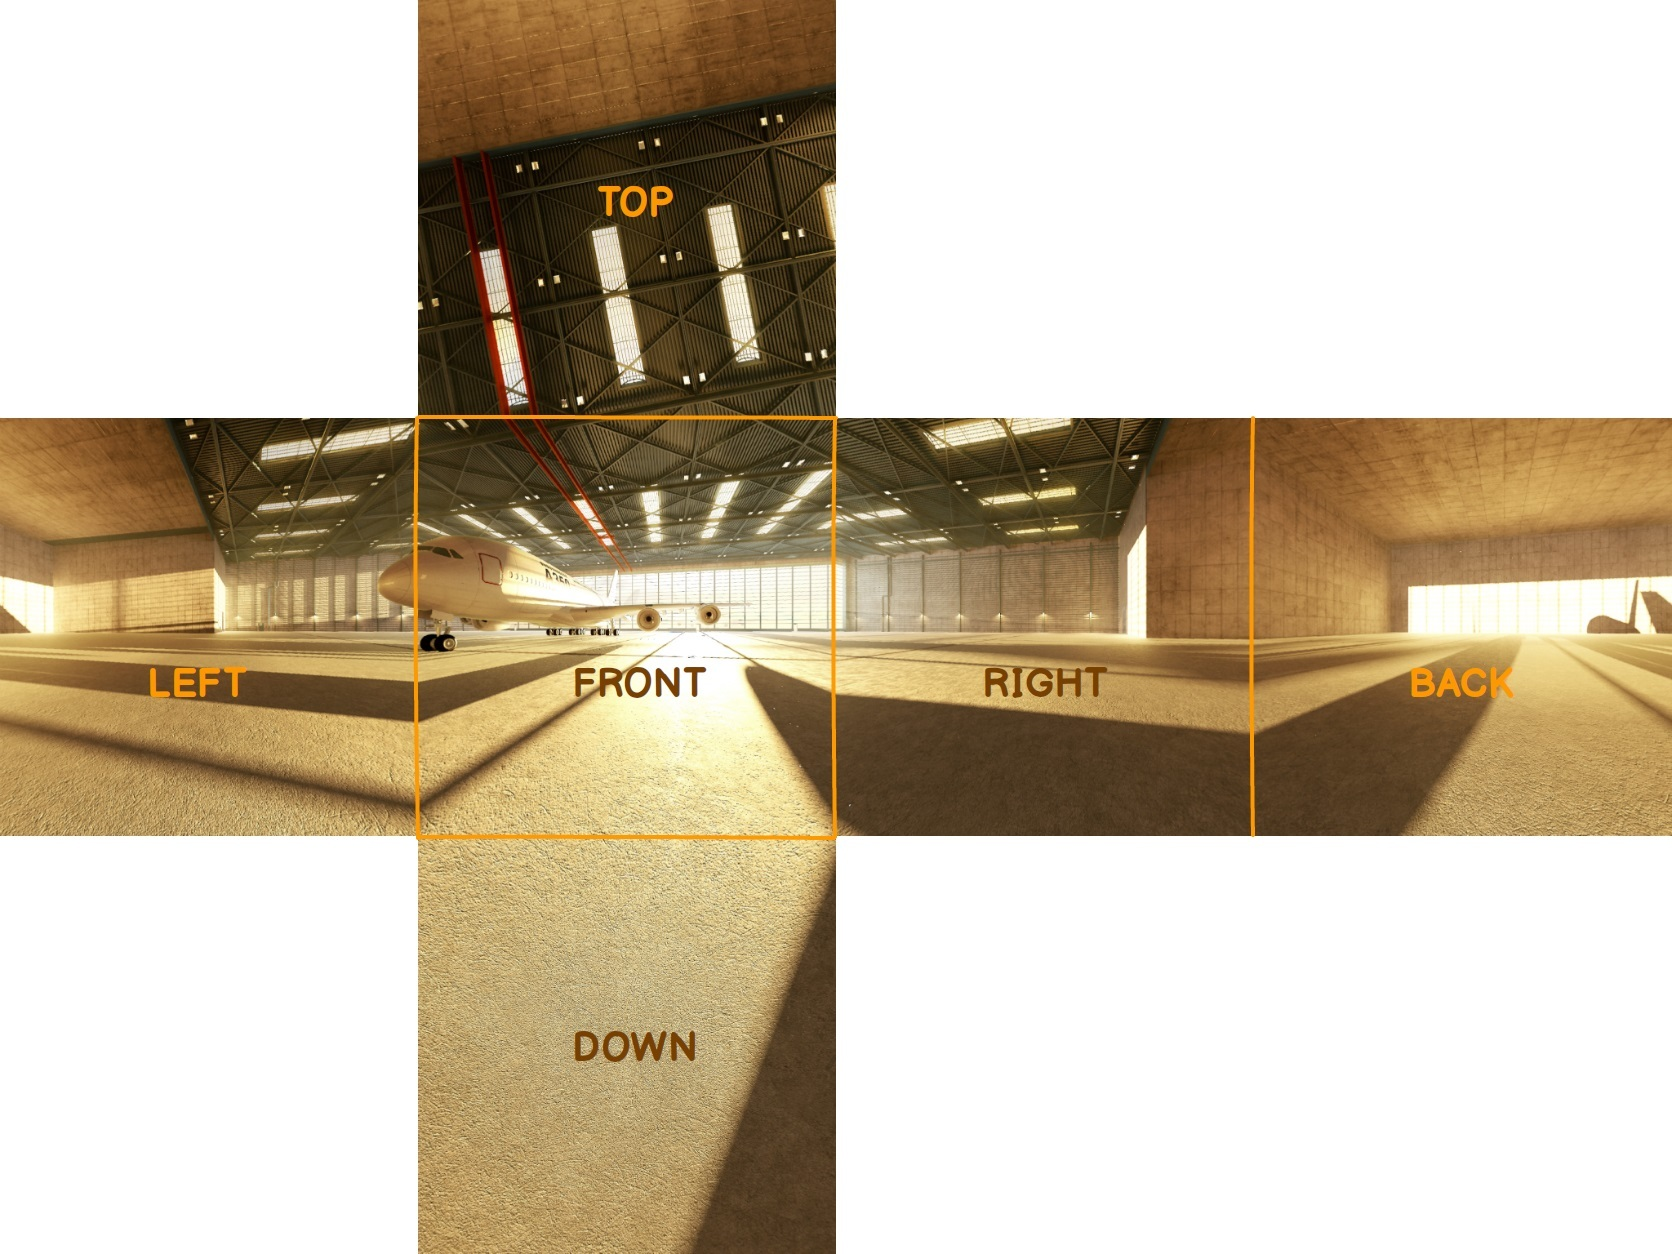 How to Use 360° Equirectangular Panoramas for Greater Realism in Games